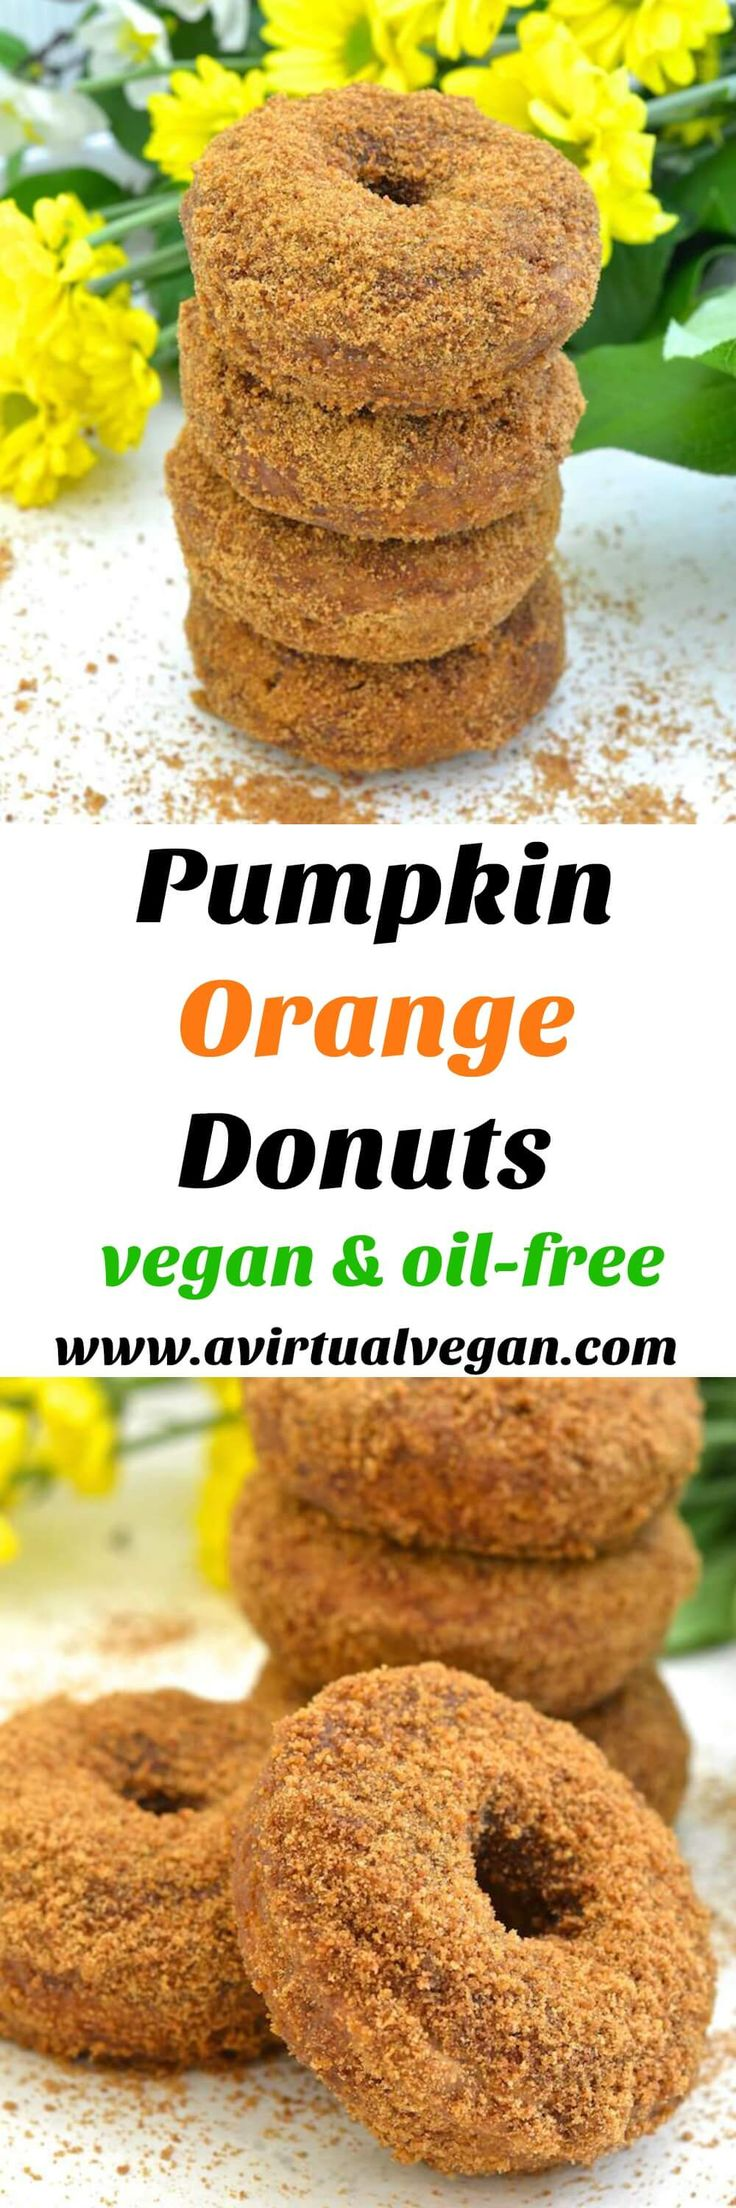 Moist, soft & fluffy, oil-free Pumpkin Orange Donuts. Baked to perfection then rolled in sugar. So easy to make & no mixer required! All you need is a spoon & a bowl. No donut pan? Don't worry, I've got you covered, but just so's you know....everything tastes better in donut shape! ;O) via @avirtualvegan